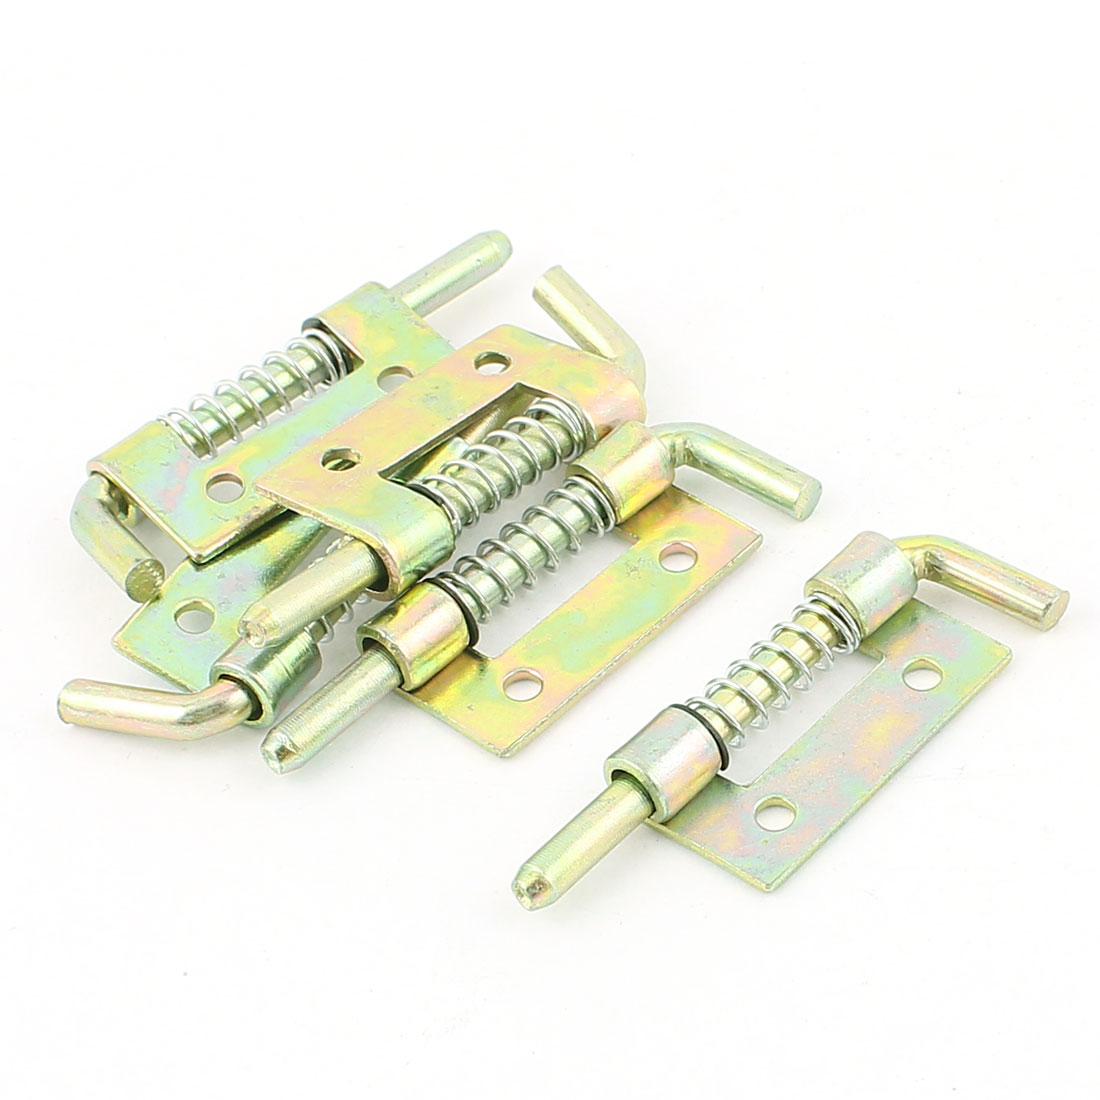 5pcs Locked Spring Loaded Metal Security Barrel Bolt Latch Bronze Tone